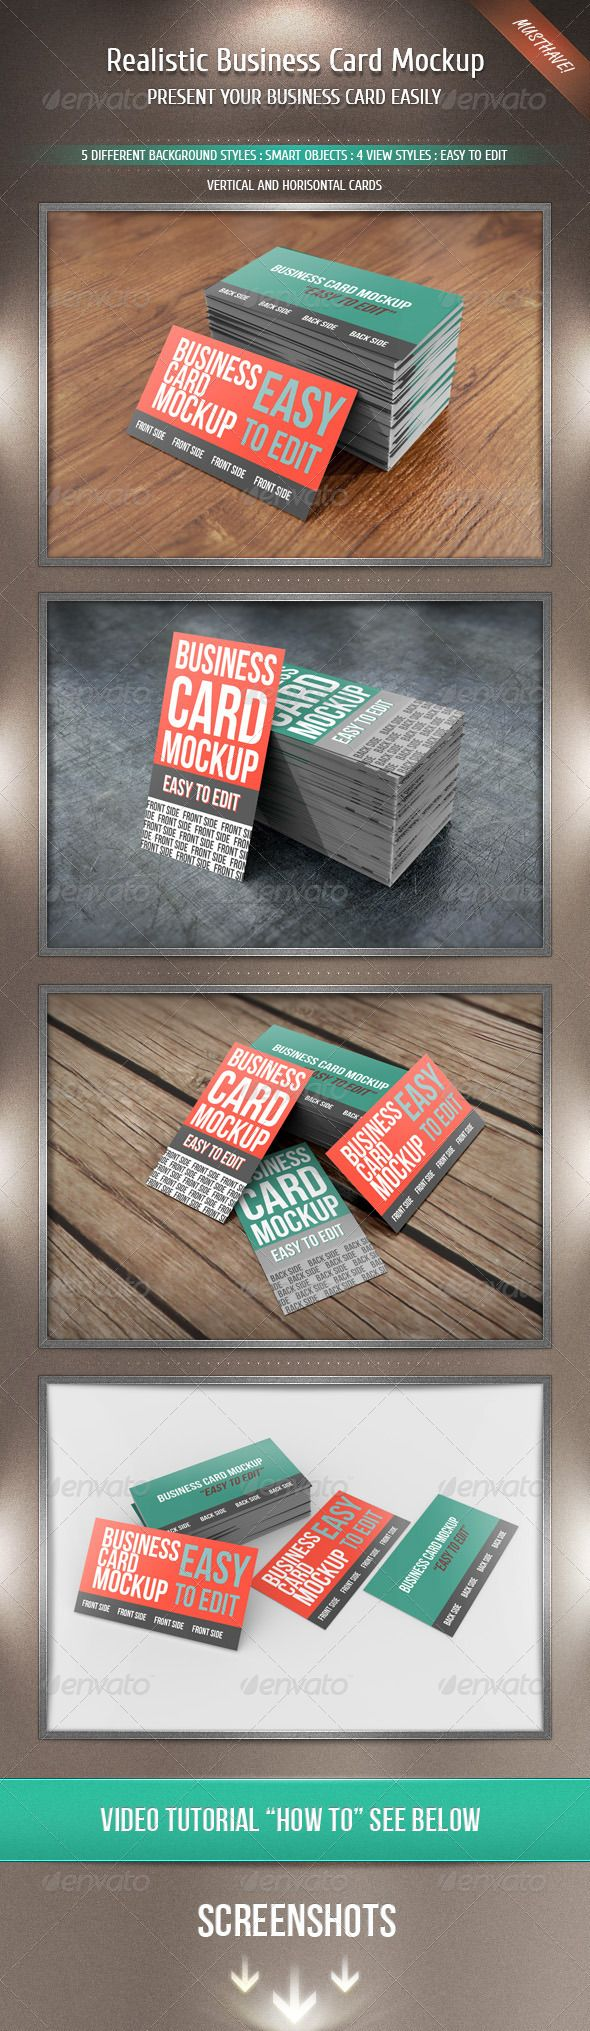 Realistic Business Card Mockup | Mockup and Business cards